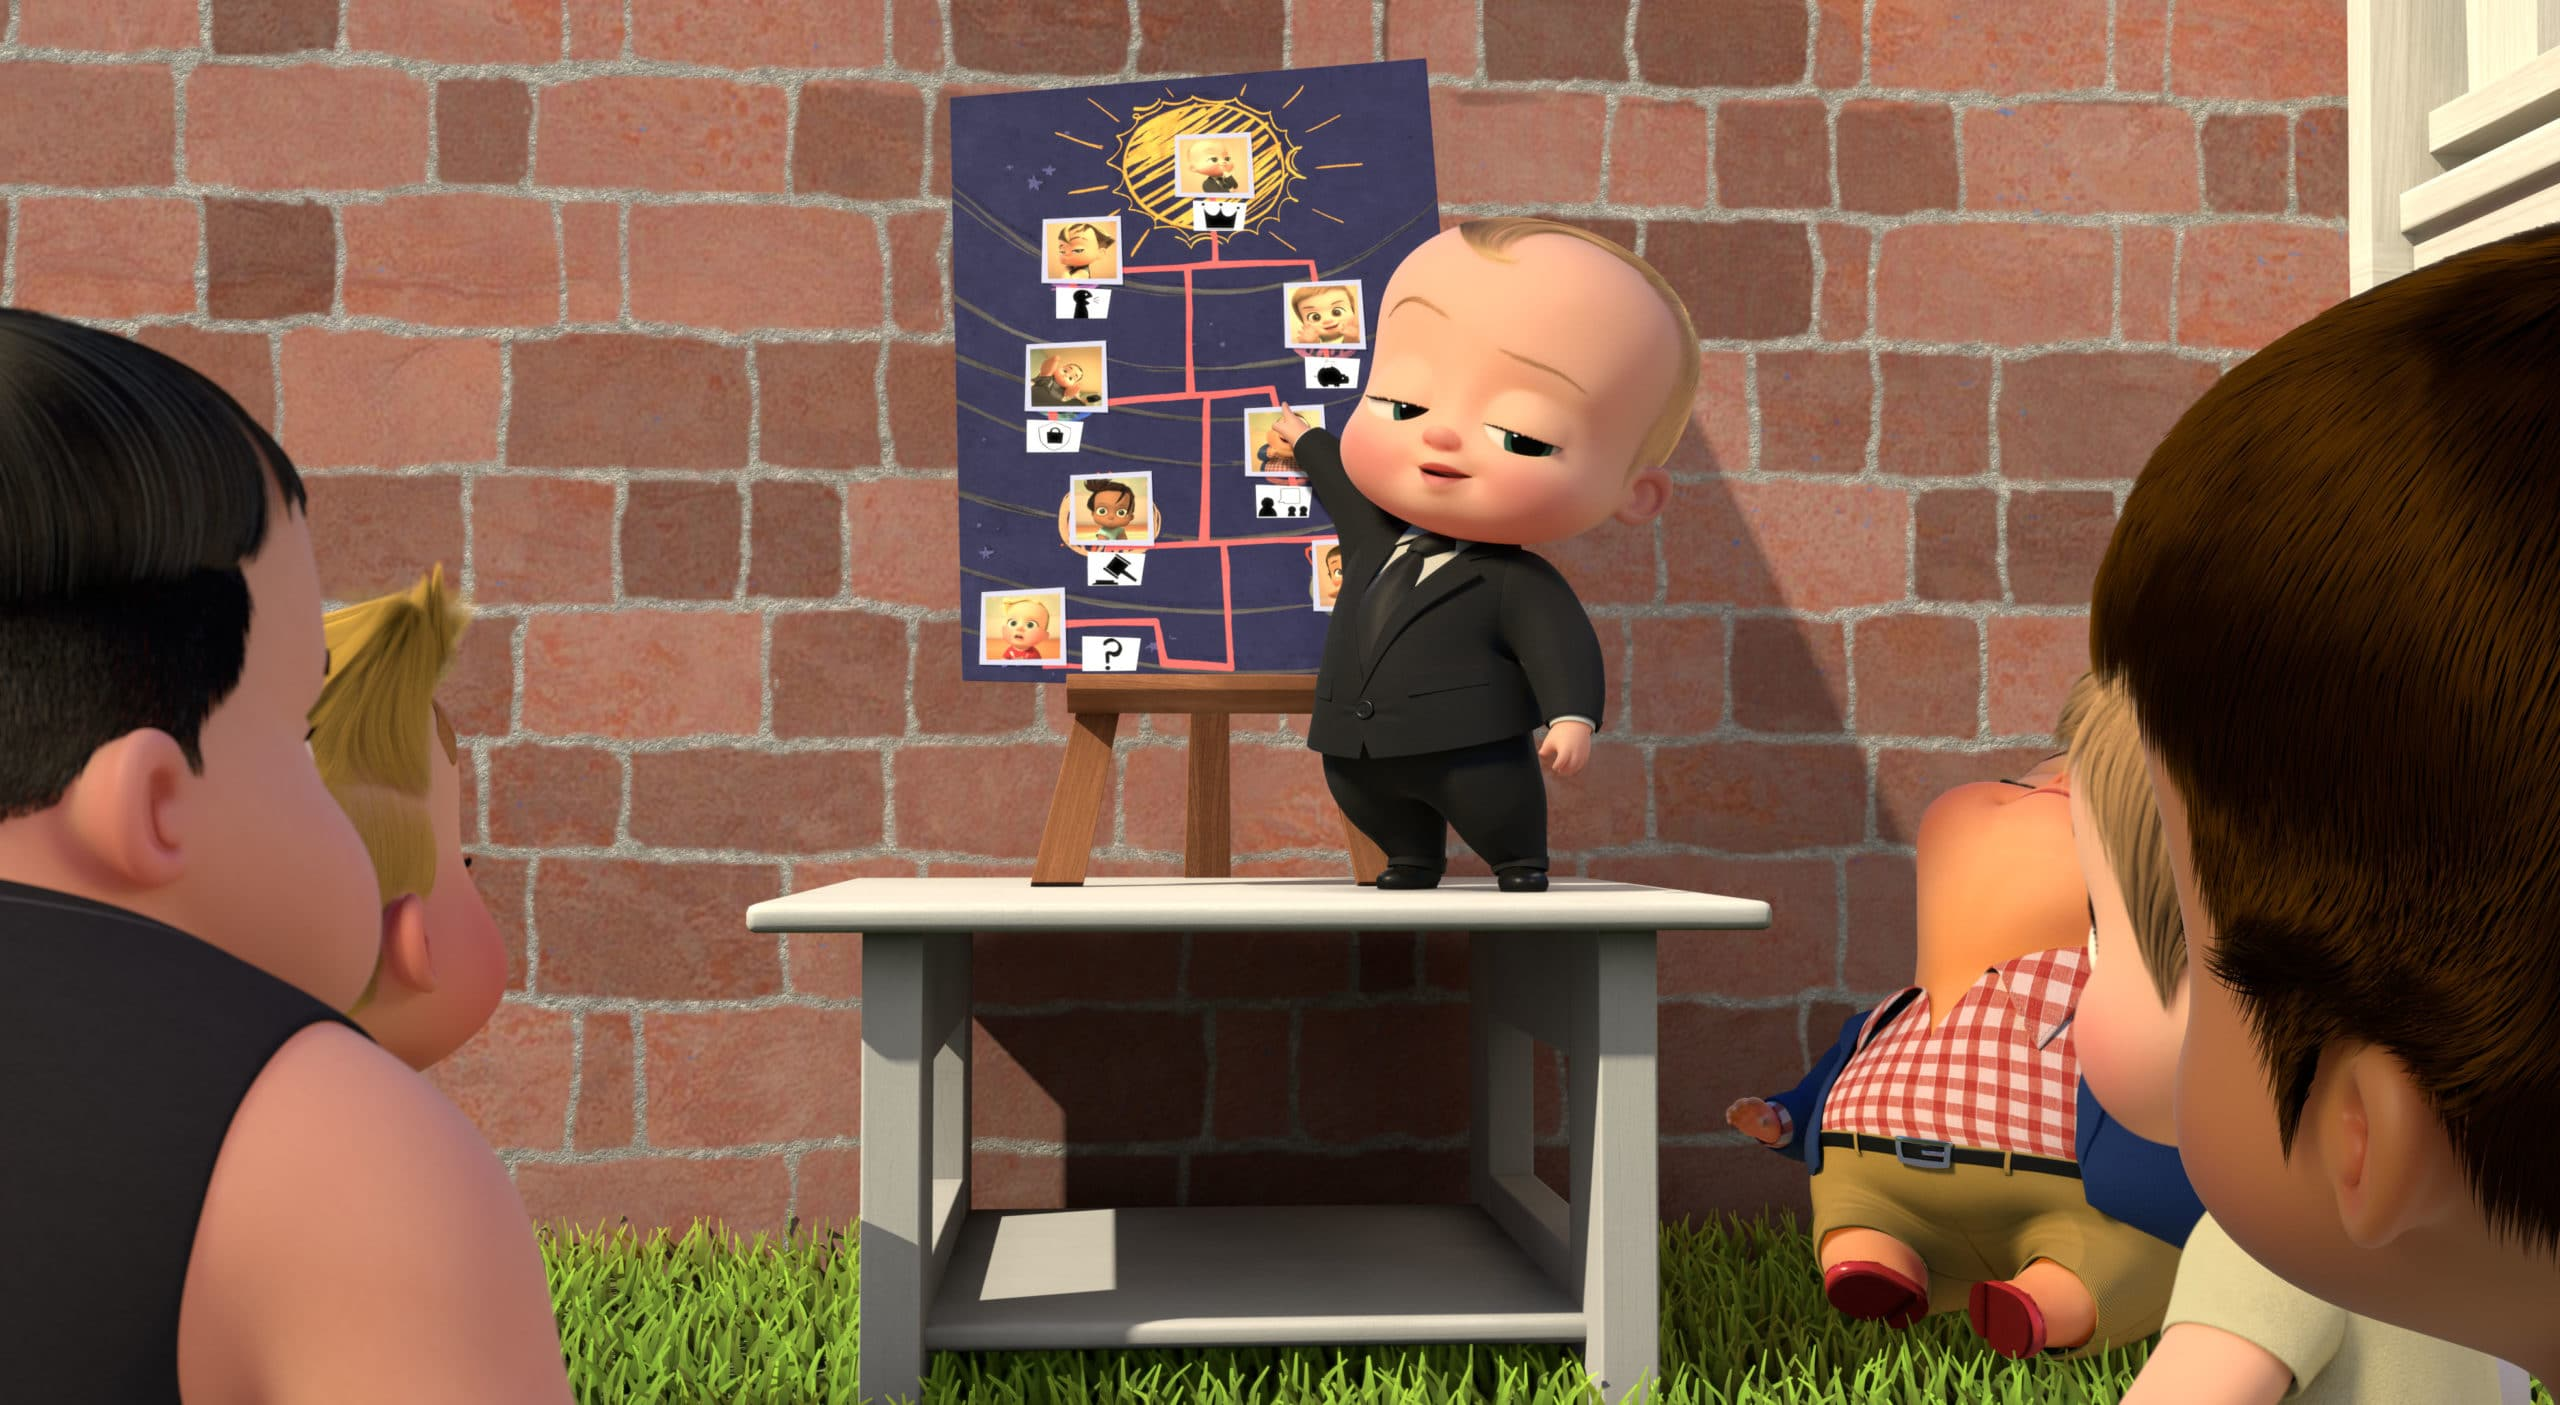 Boss Baby Org Chart. Boss Baby Season 3 Back In Business - Netflix Premiere March 16. The boss is back, baby! After a long sabbatical everyone's favorite modern career baby makes a comeback in the newly launched Season 3 trailer for ?DreamWorks The Boss Baby Back in Business?.